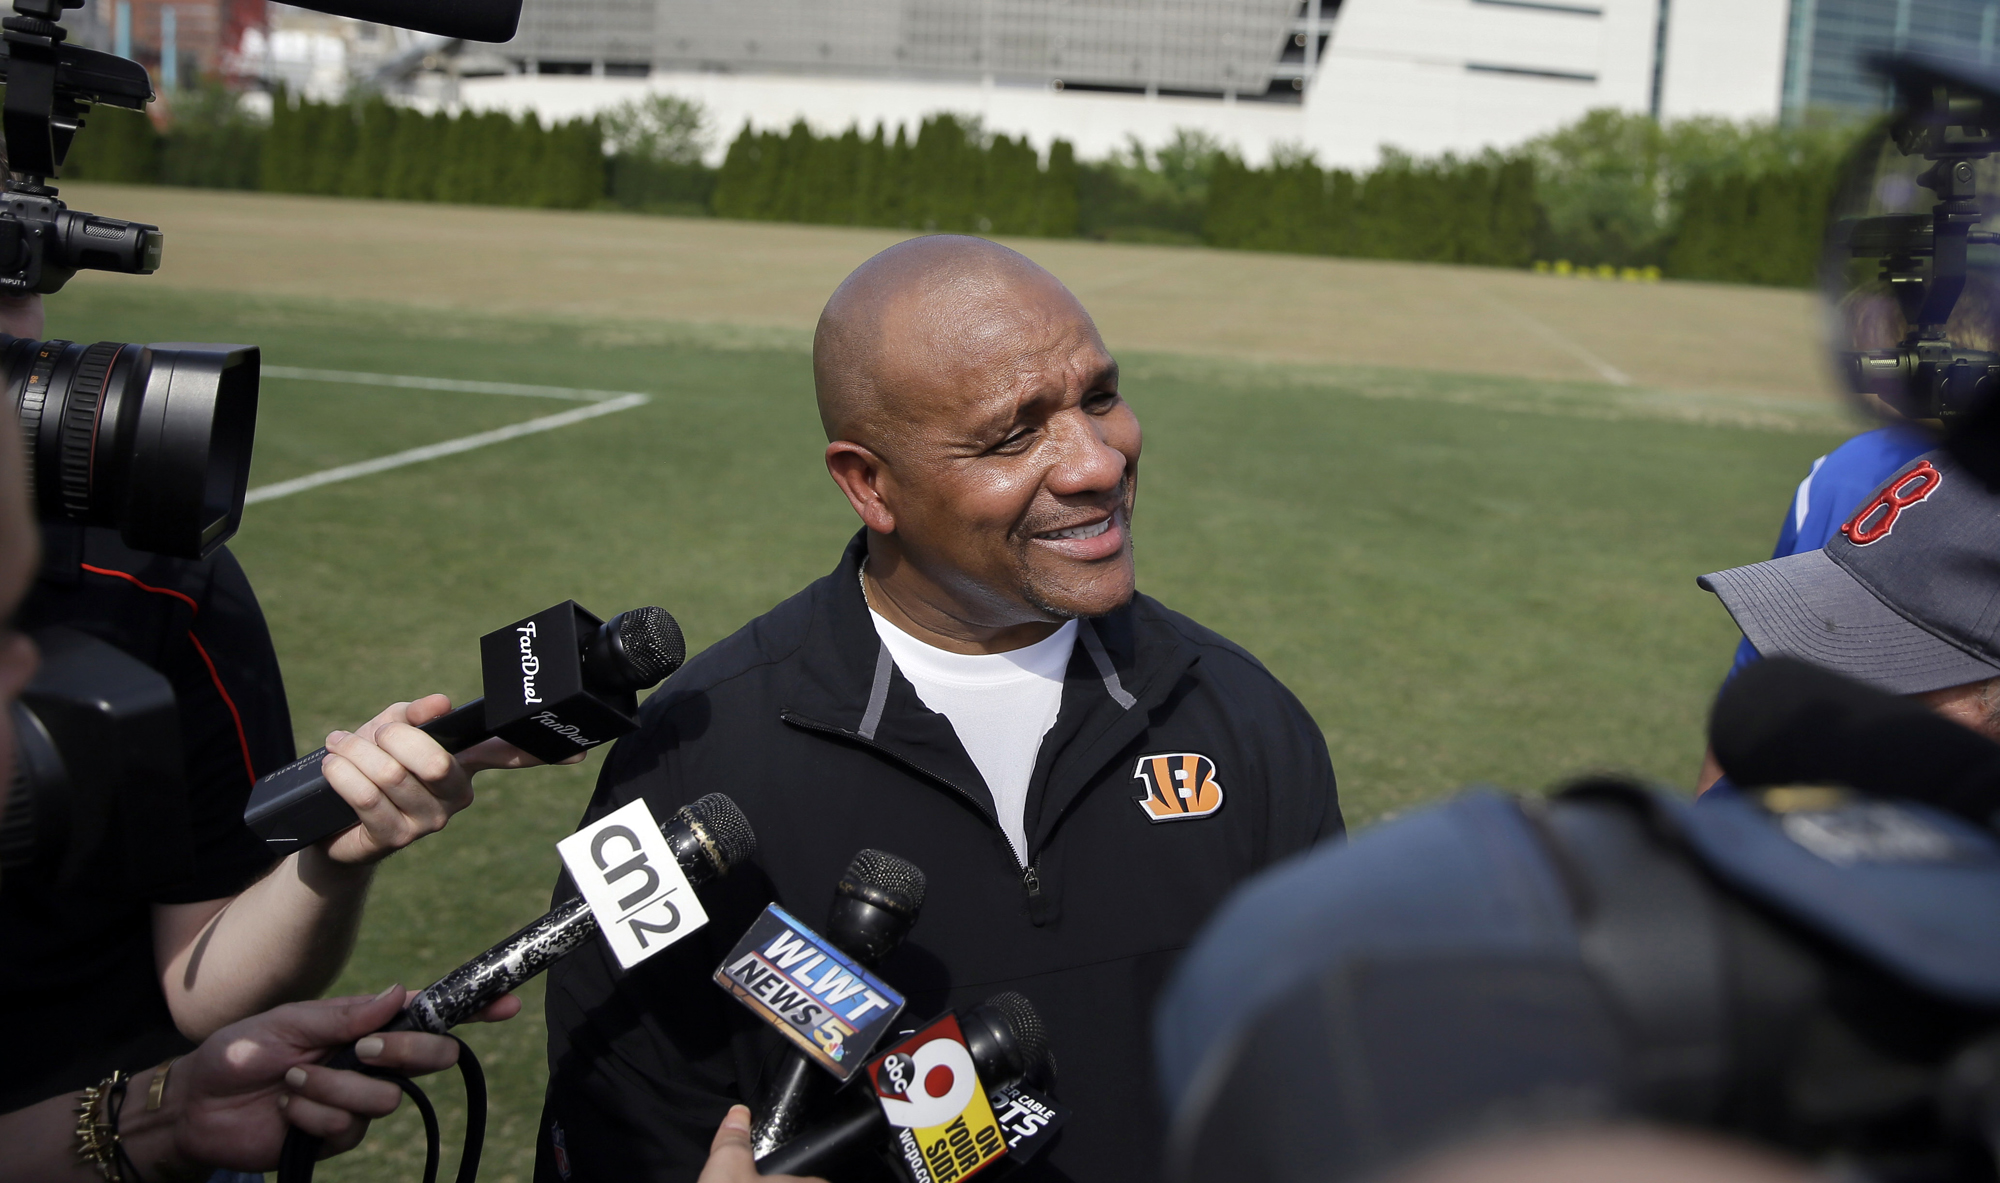 Cincinnati Bengals NFL football offensive coordinator Hue Jackson speaks to reporters outside Paul Brown Stadium following a rookie minicamp in Cincinnati. New Cleveland Browns coach Hue Jackson said the team is 'not anywhere close' to making a decision on it will use the No. 2 overall pick in this year's NFL draft.